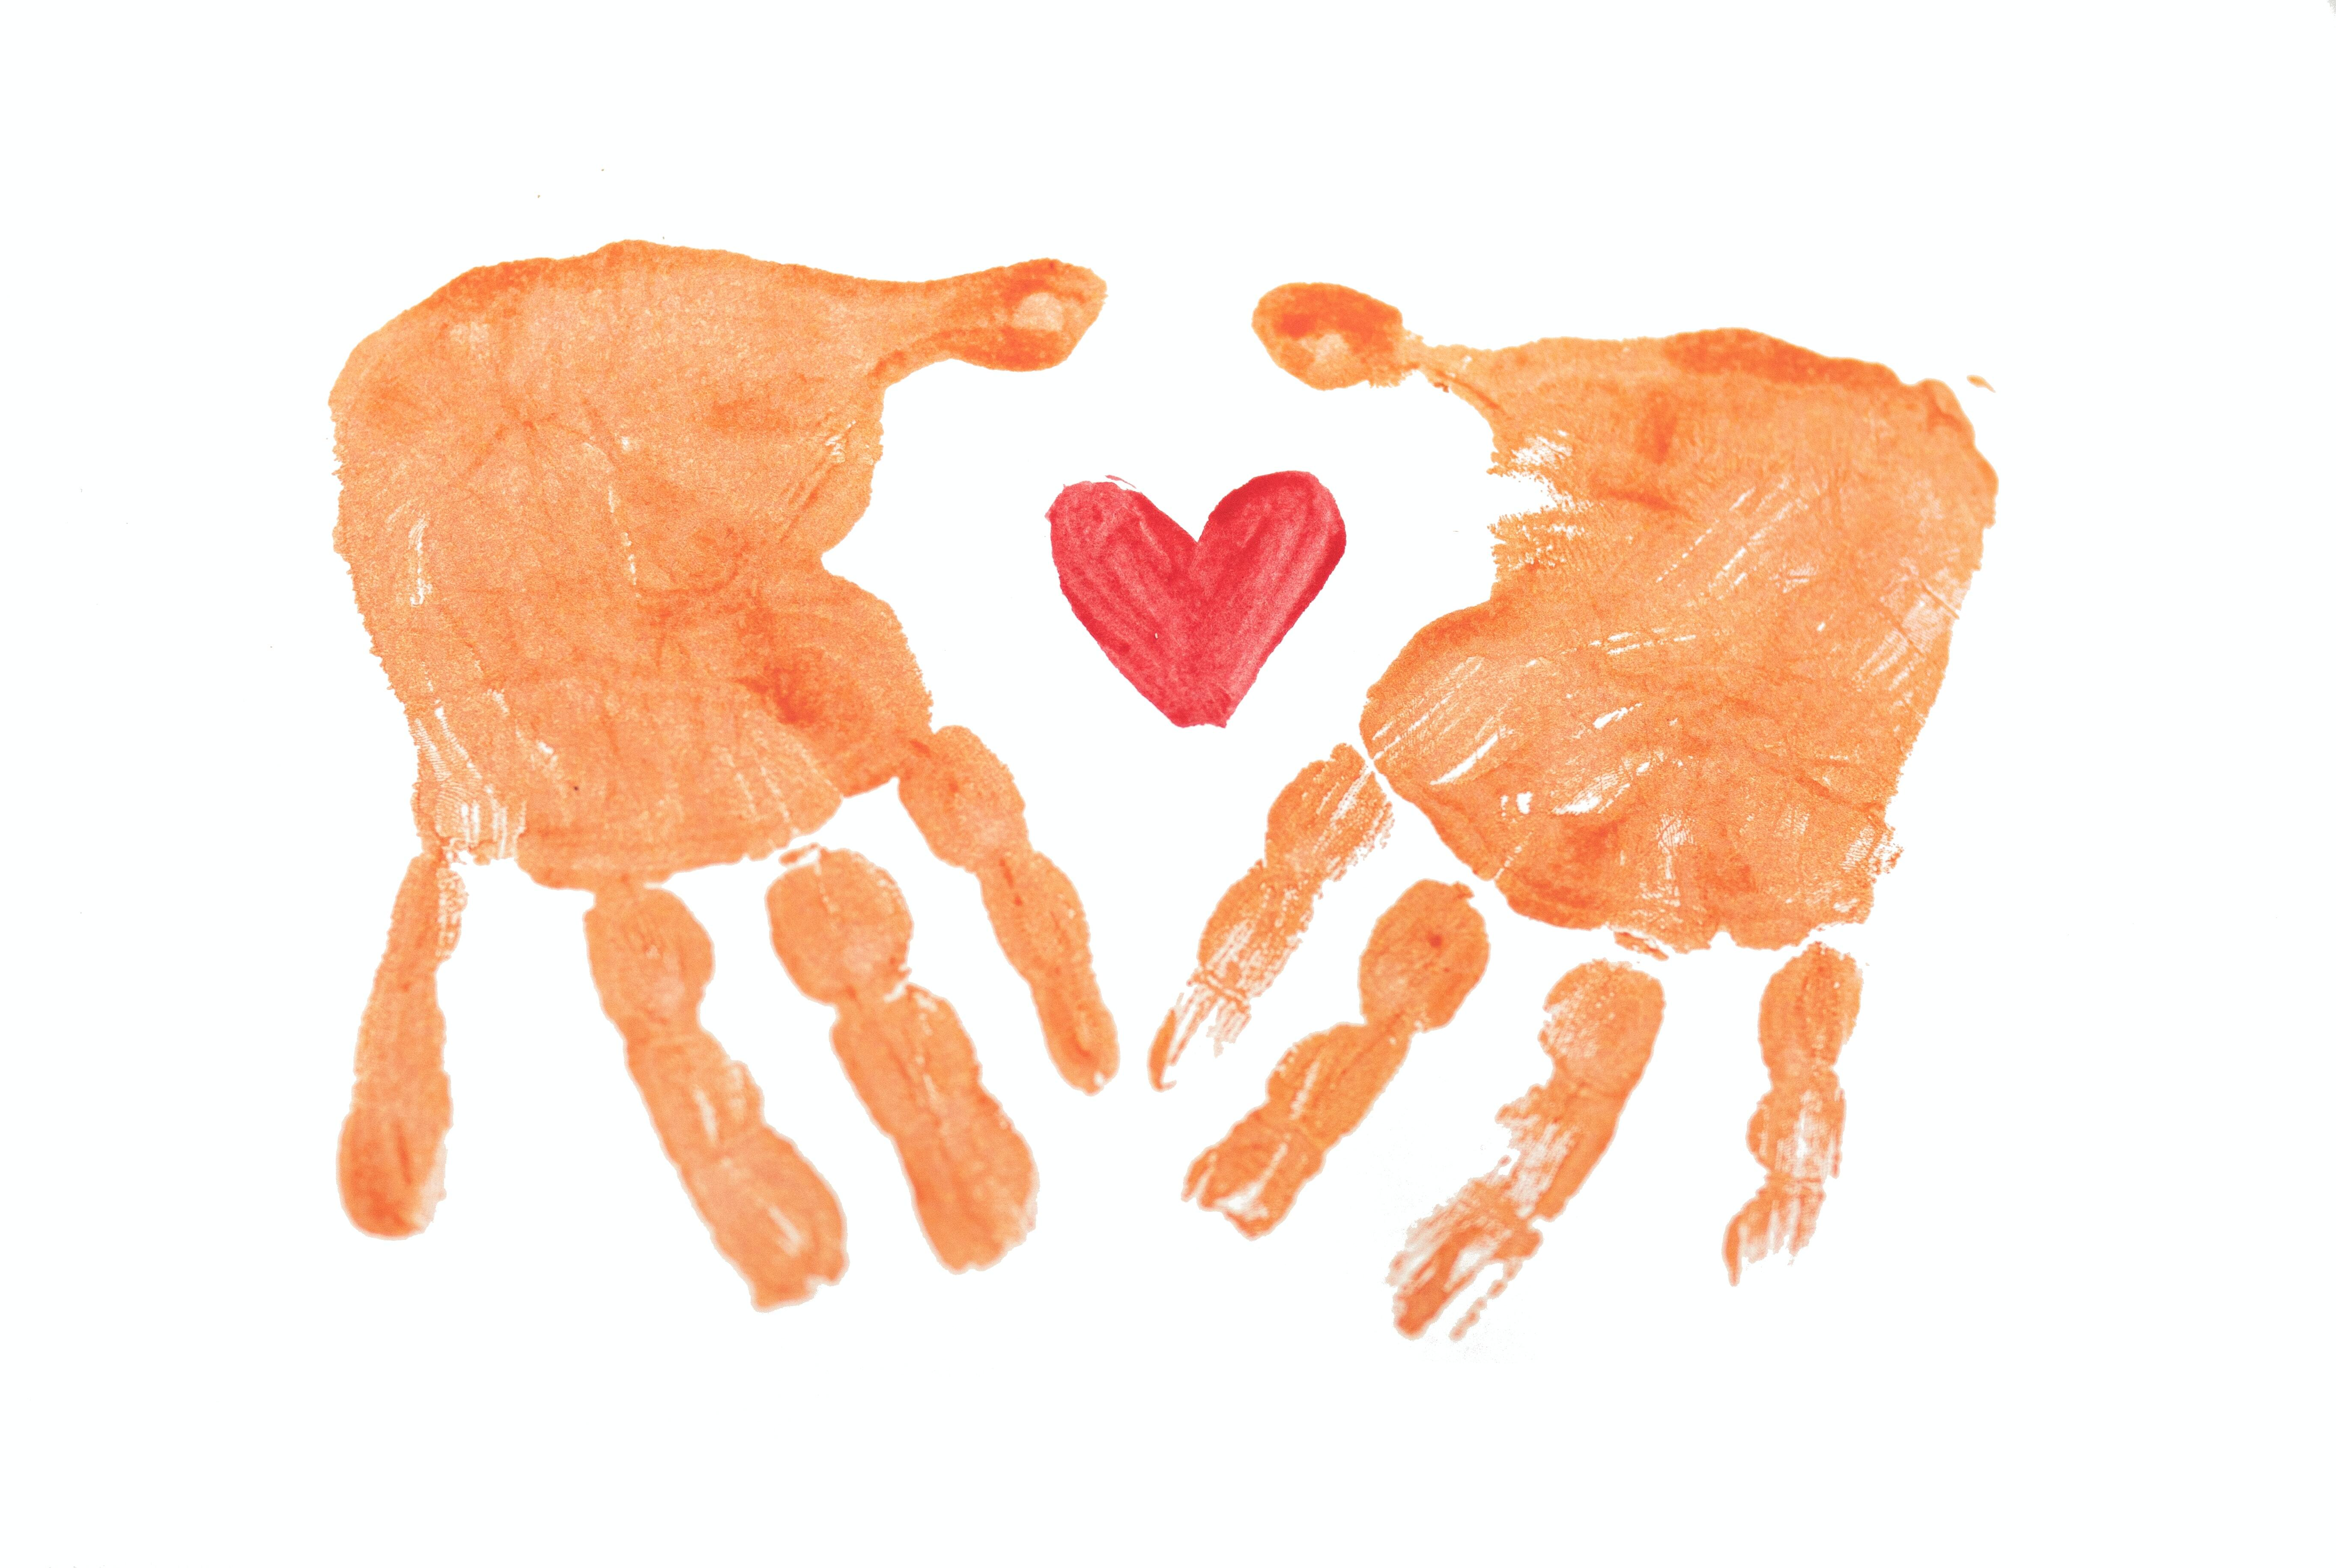 Two orange handprints around a painted red heart.